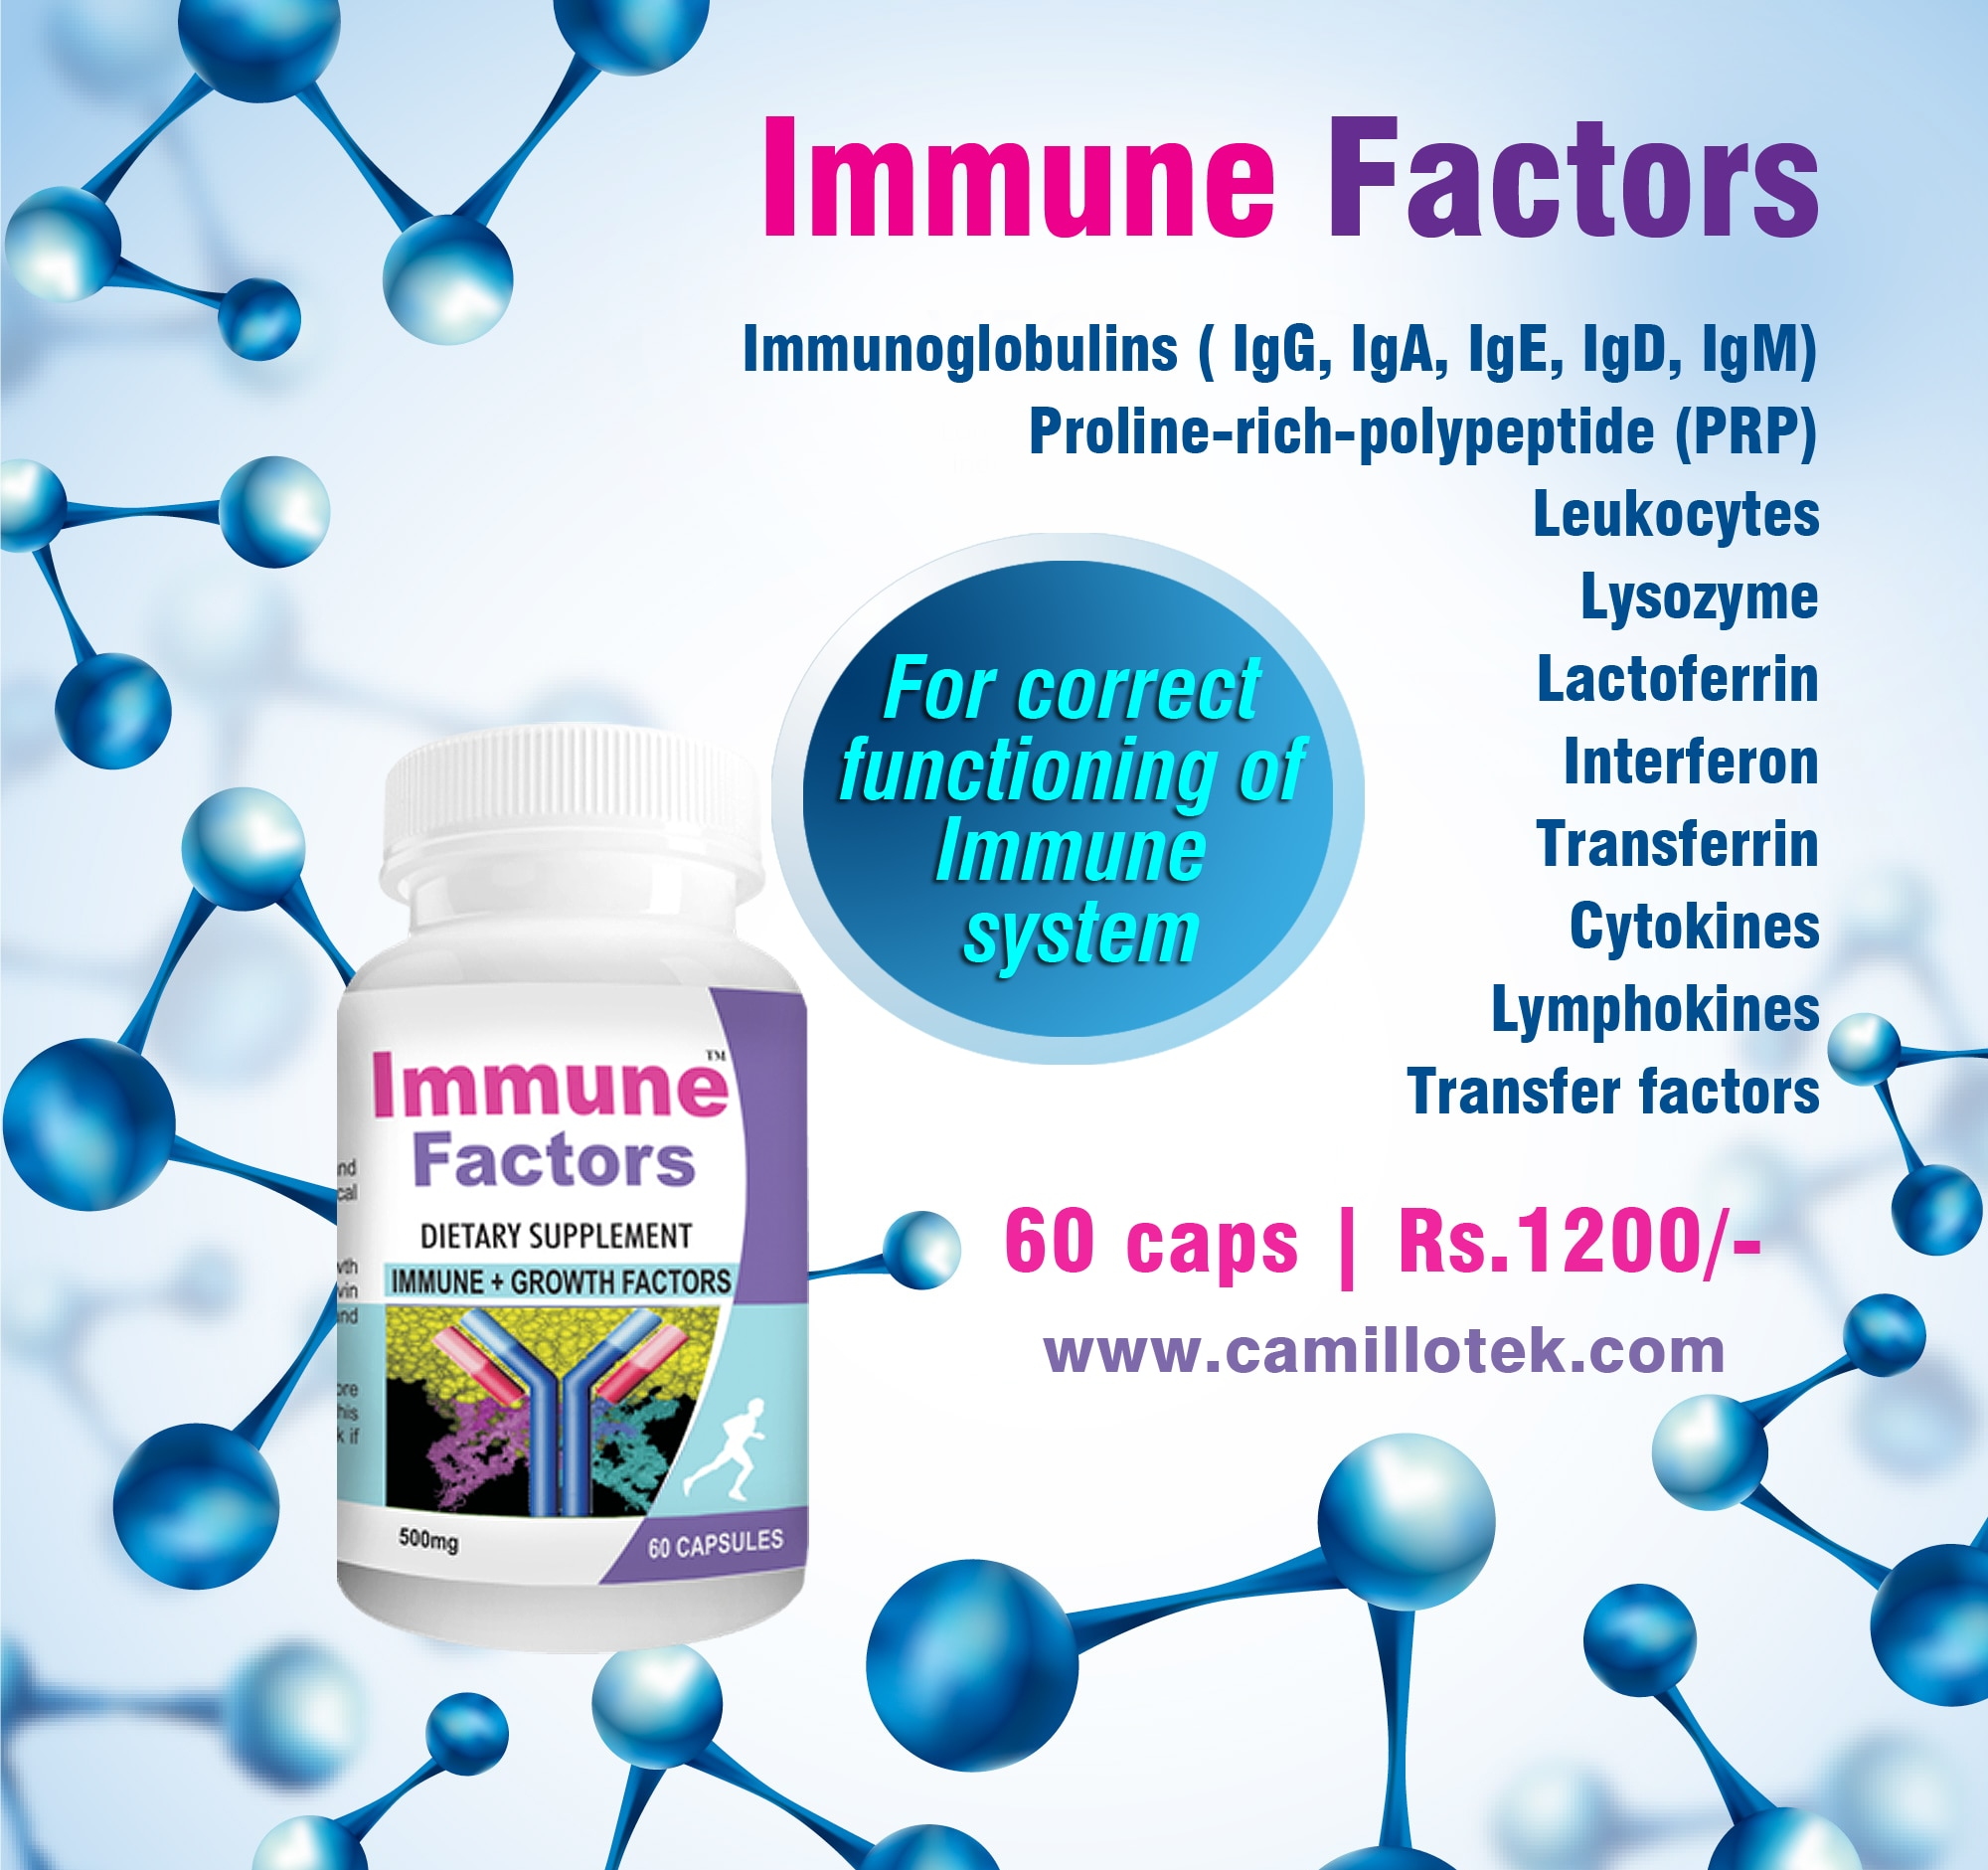 The immune factors are essential for the correct functioning of immune system. Camillotek Immune Factors contains Immunoglobulins (antibodies) - IgG, IgA, IgE, IgD, IgM, Leukocytes, Lysozyme, Lactoferrin, Interferon, Transferrin, Proline-rich-polypeptide (PRP), Cytokines, Lymphokines and Transfer factors.  Buy Immune factor capsules online, immune growth factors, immune support capsules, capsules for immunity, immune strength tablets, natural immune increase capsules and get immunity naturally. Immune factors capsules manufacturers, Immune factor capsules suppliers, Immune factor capsules exporters wholesalers, traders in Chennai, India.